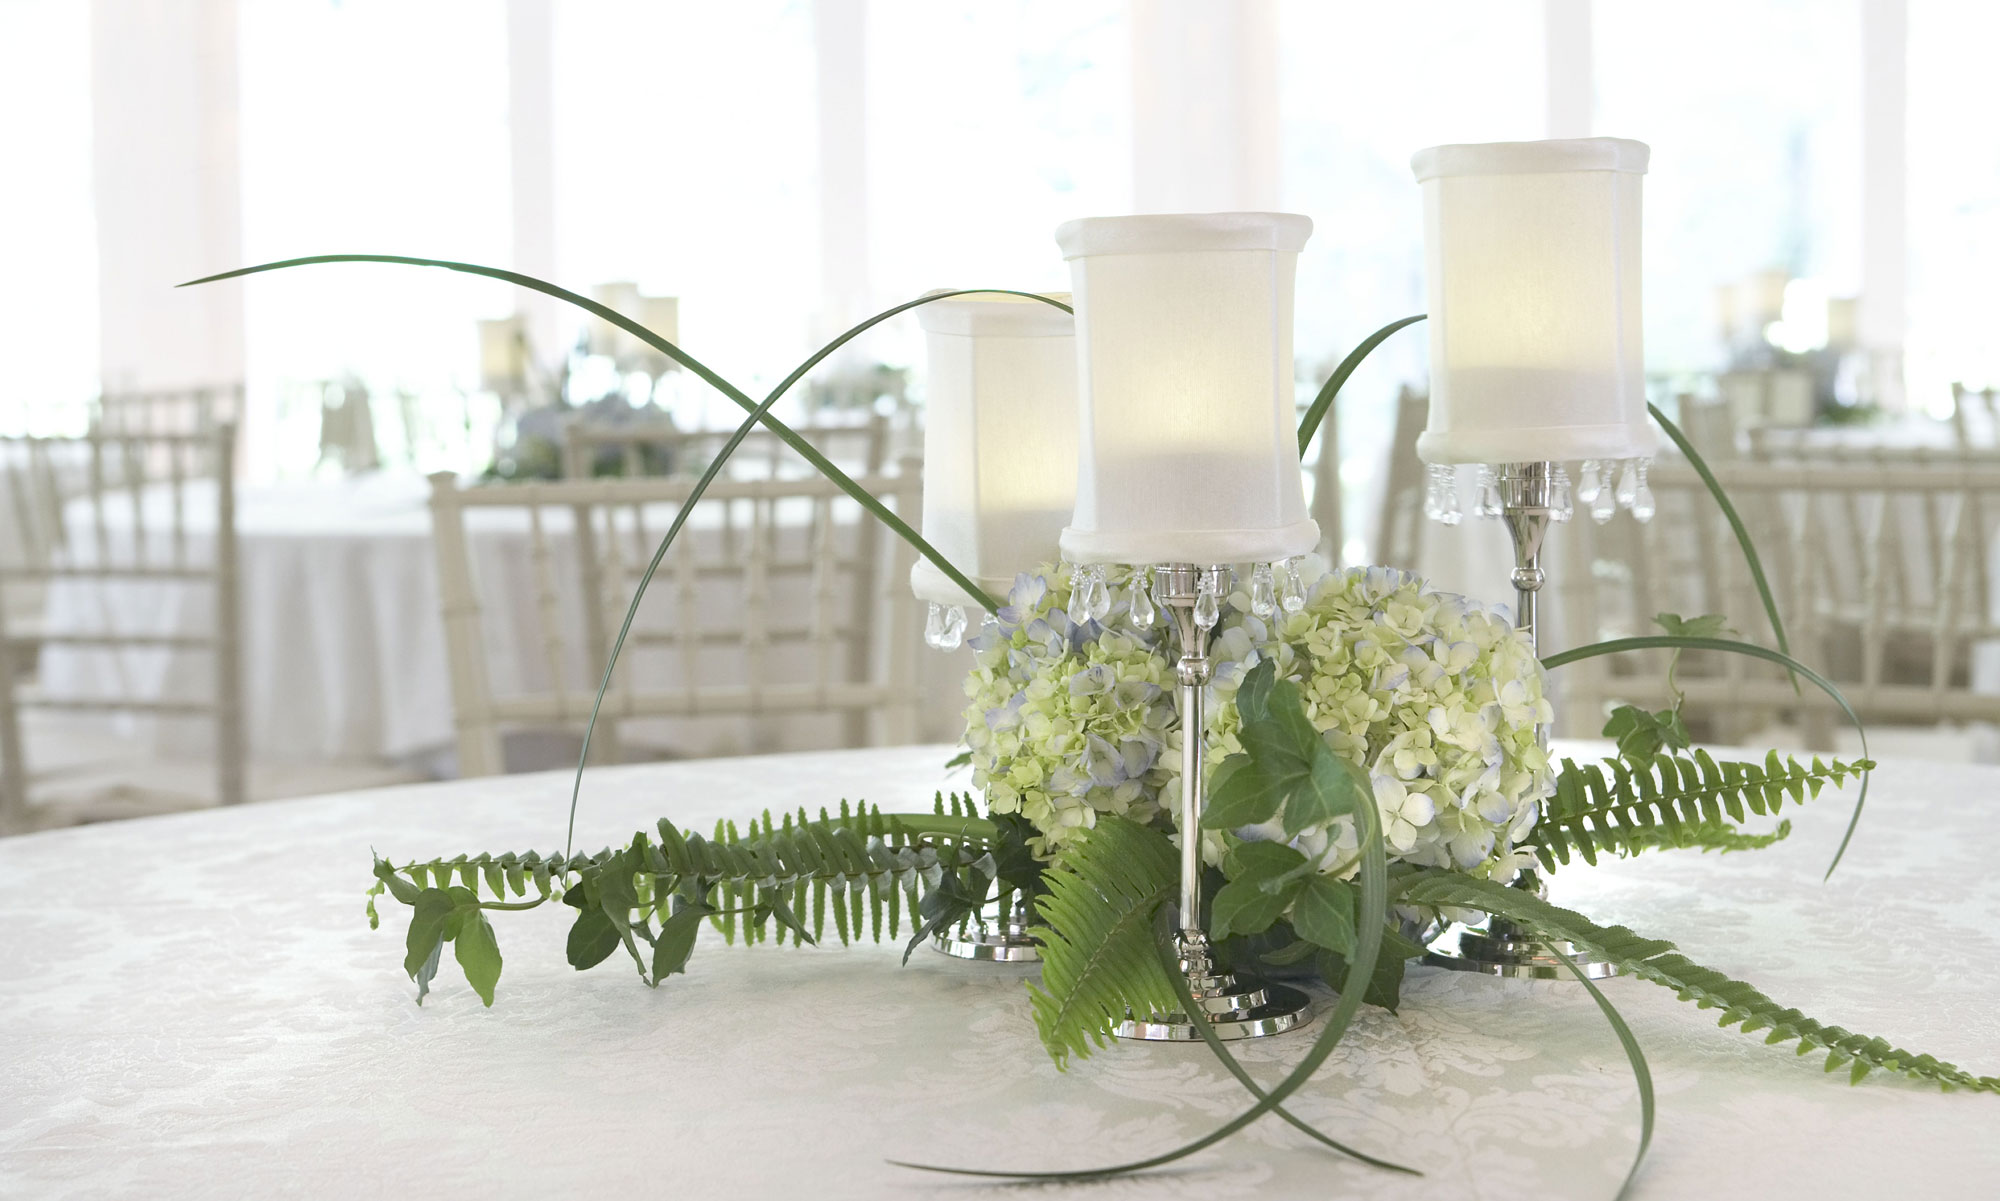 TableDecor Restaurant Table Lighting Candle Battery Lamps - Restaurant table lighting ideas